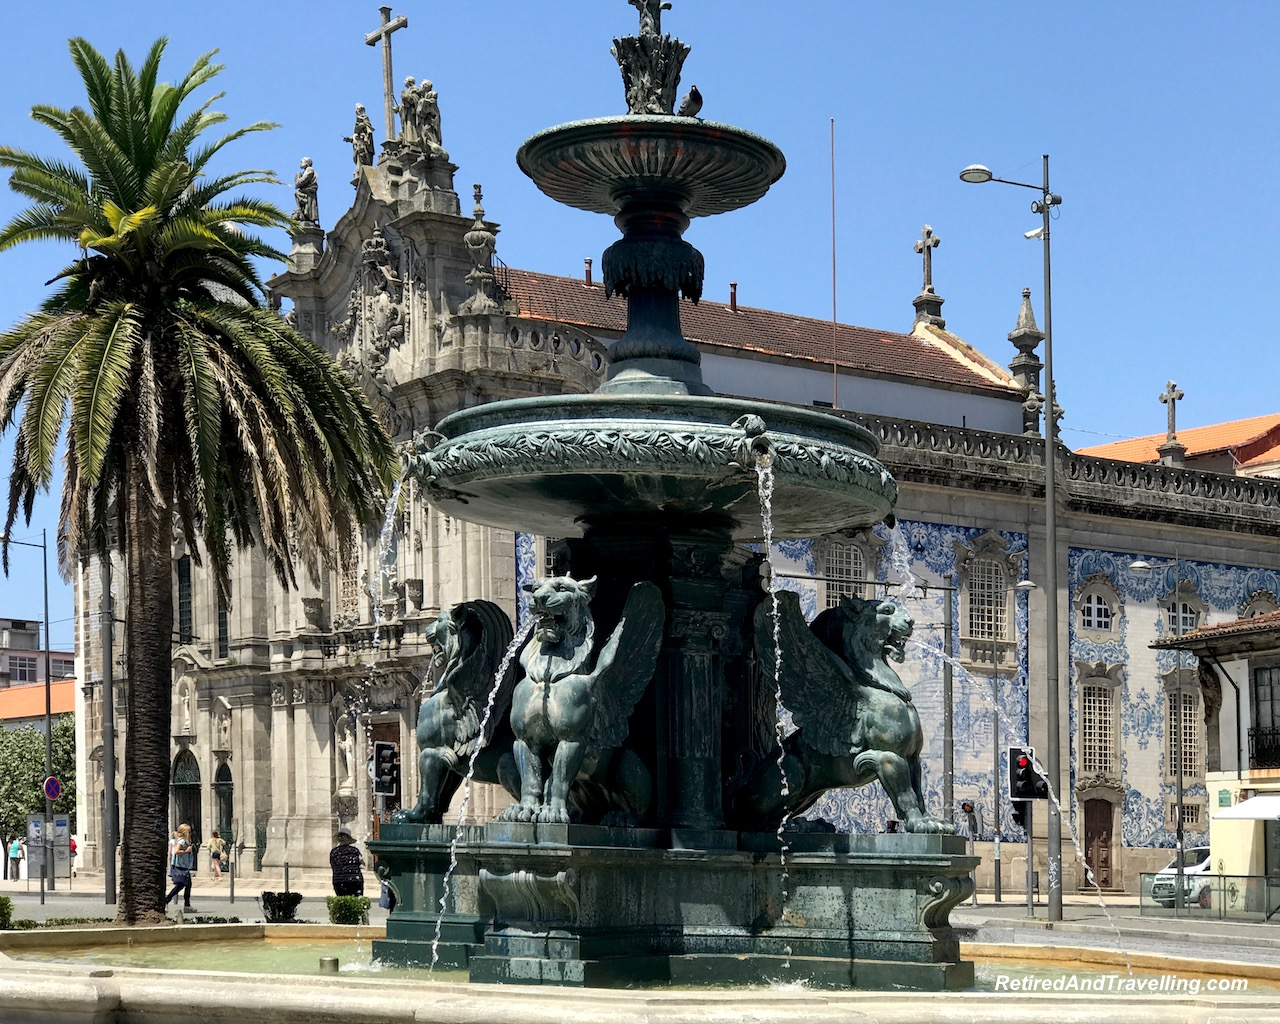 Church - Igreja do Carmo and Carmelitas - Things To Do In Porto.jpg